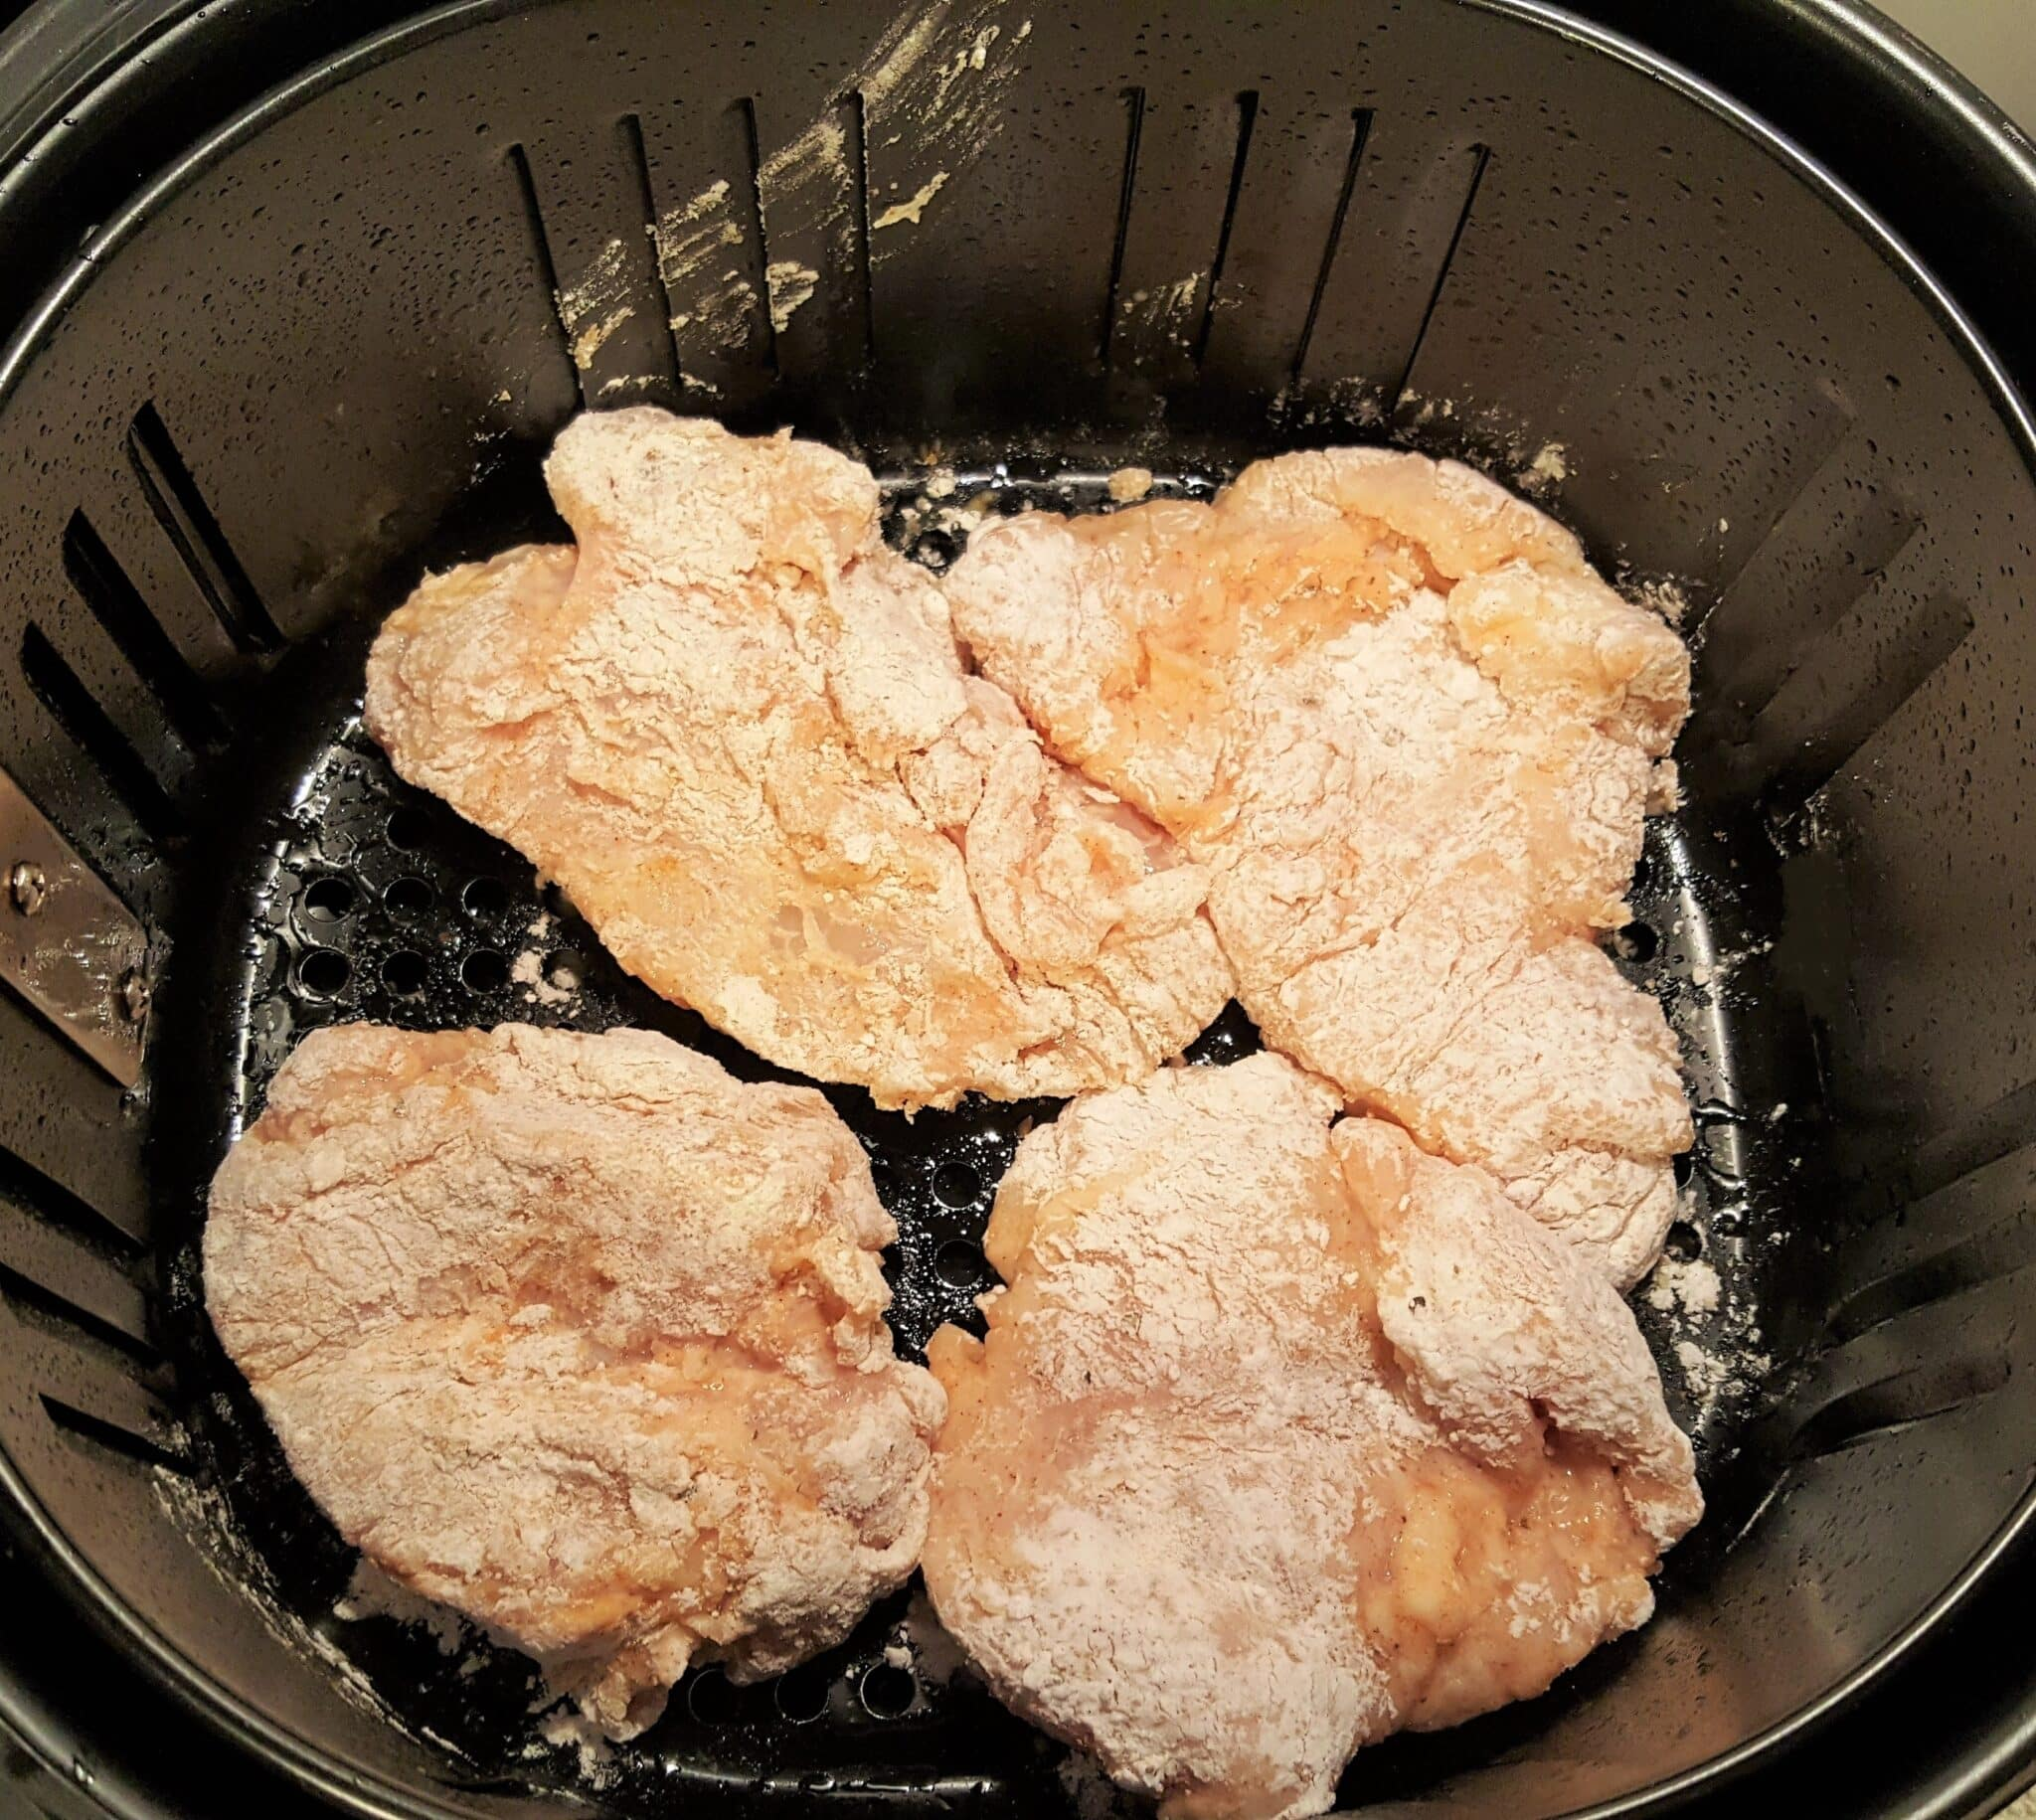 Generously Spray Chicken Breasts with Oil